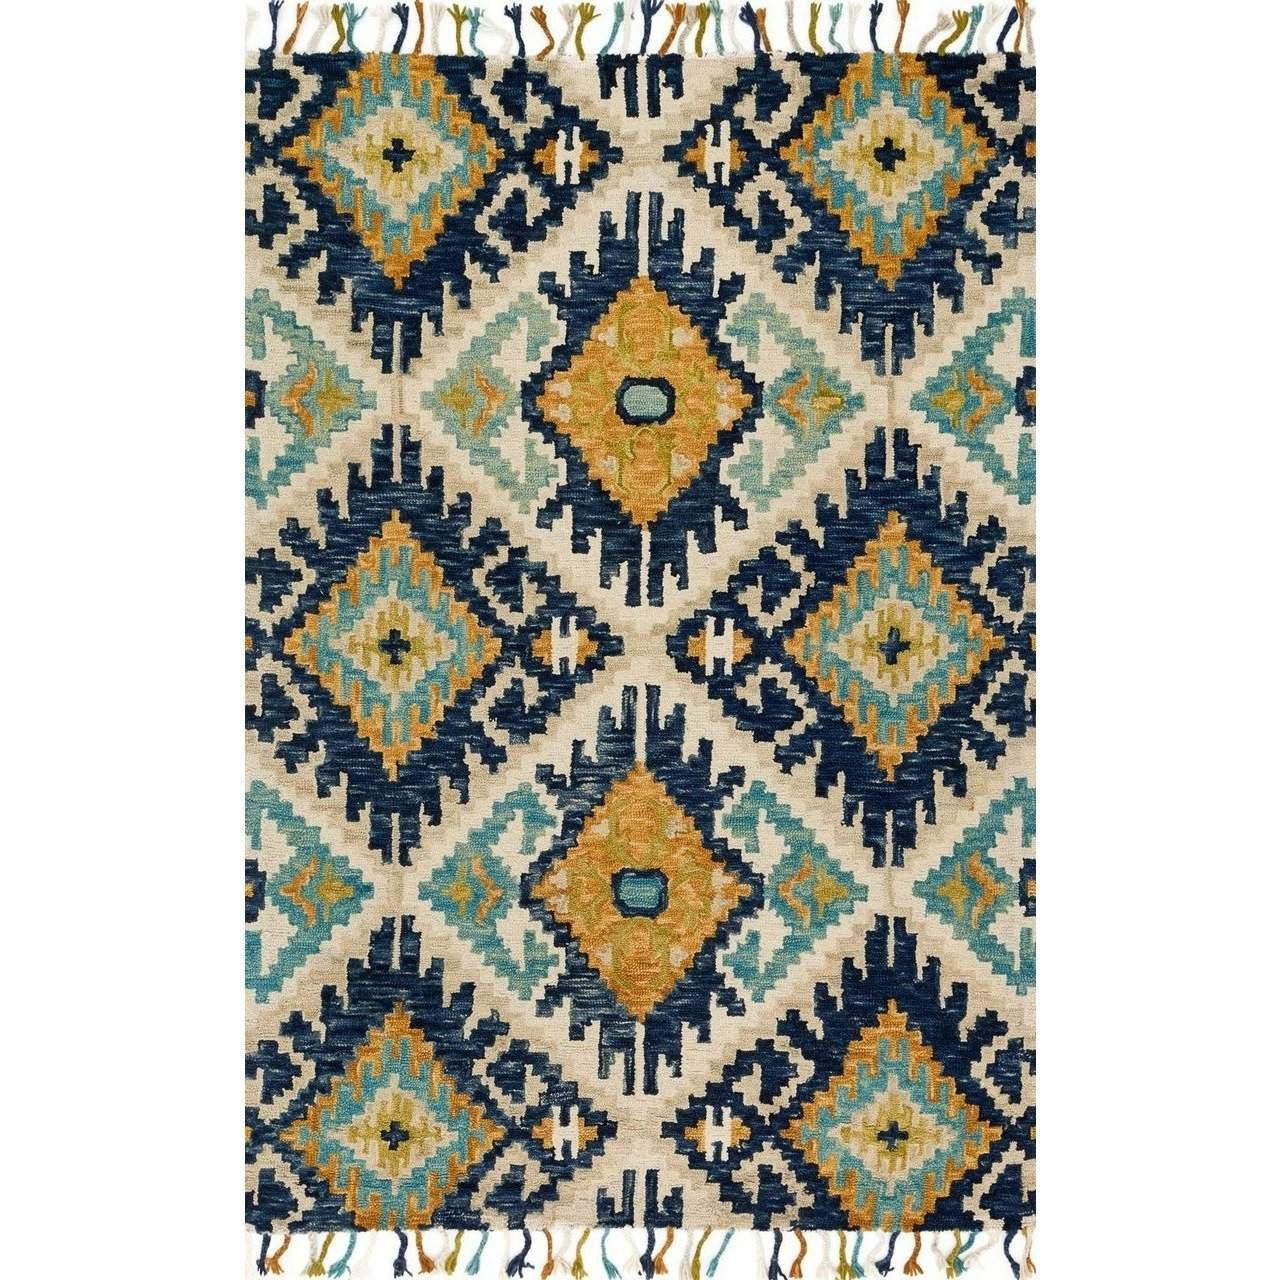 Joanna Gaines Rugs of Magnolia Home Rug Collection - Brushstroke Collection - Ivory / Marine